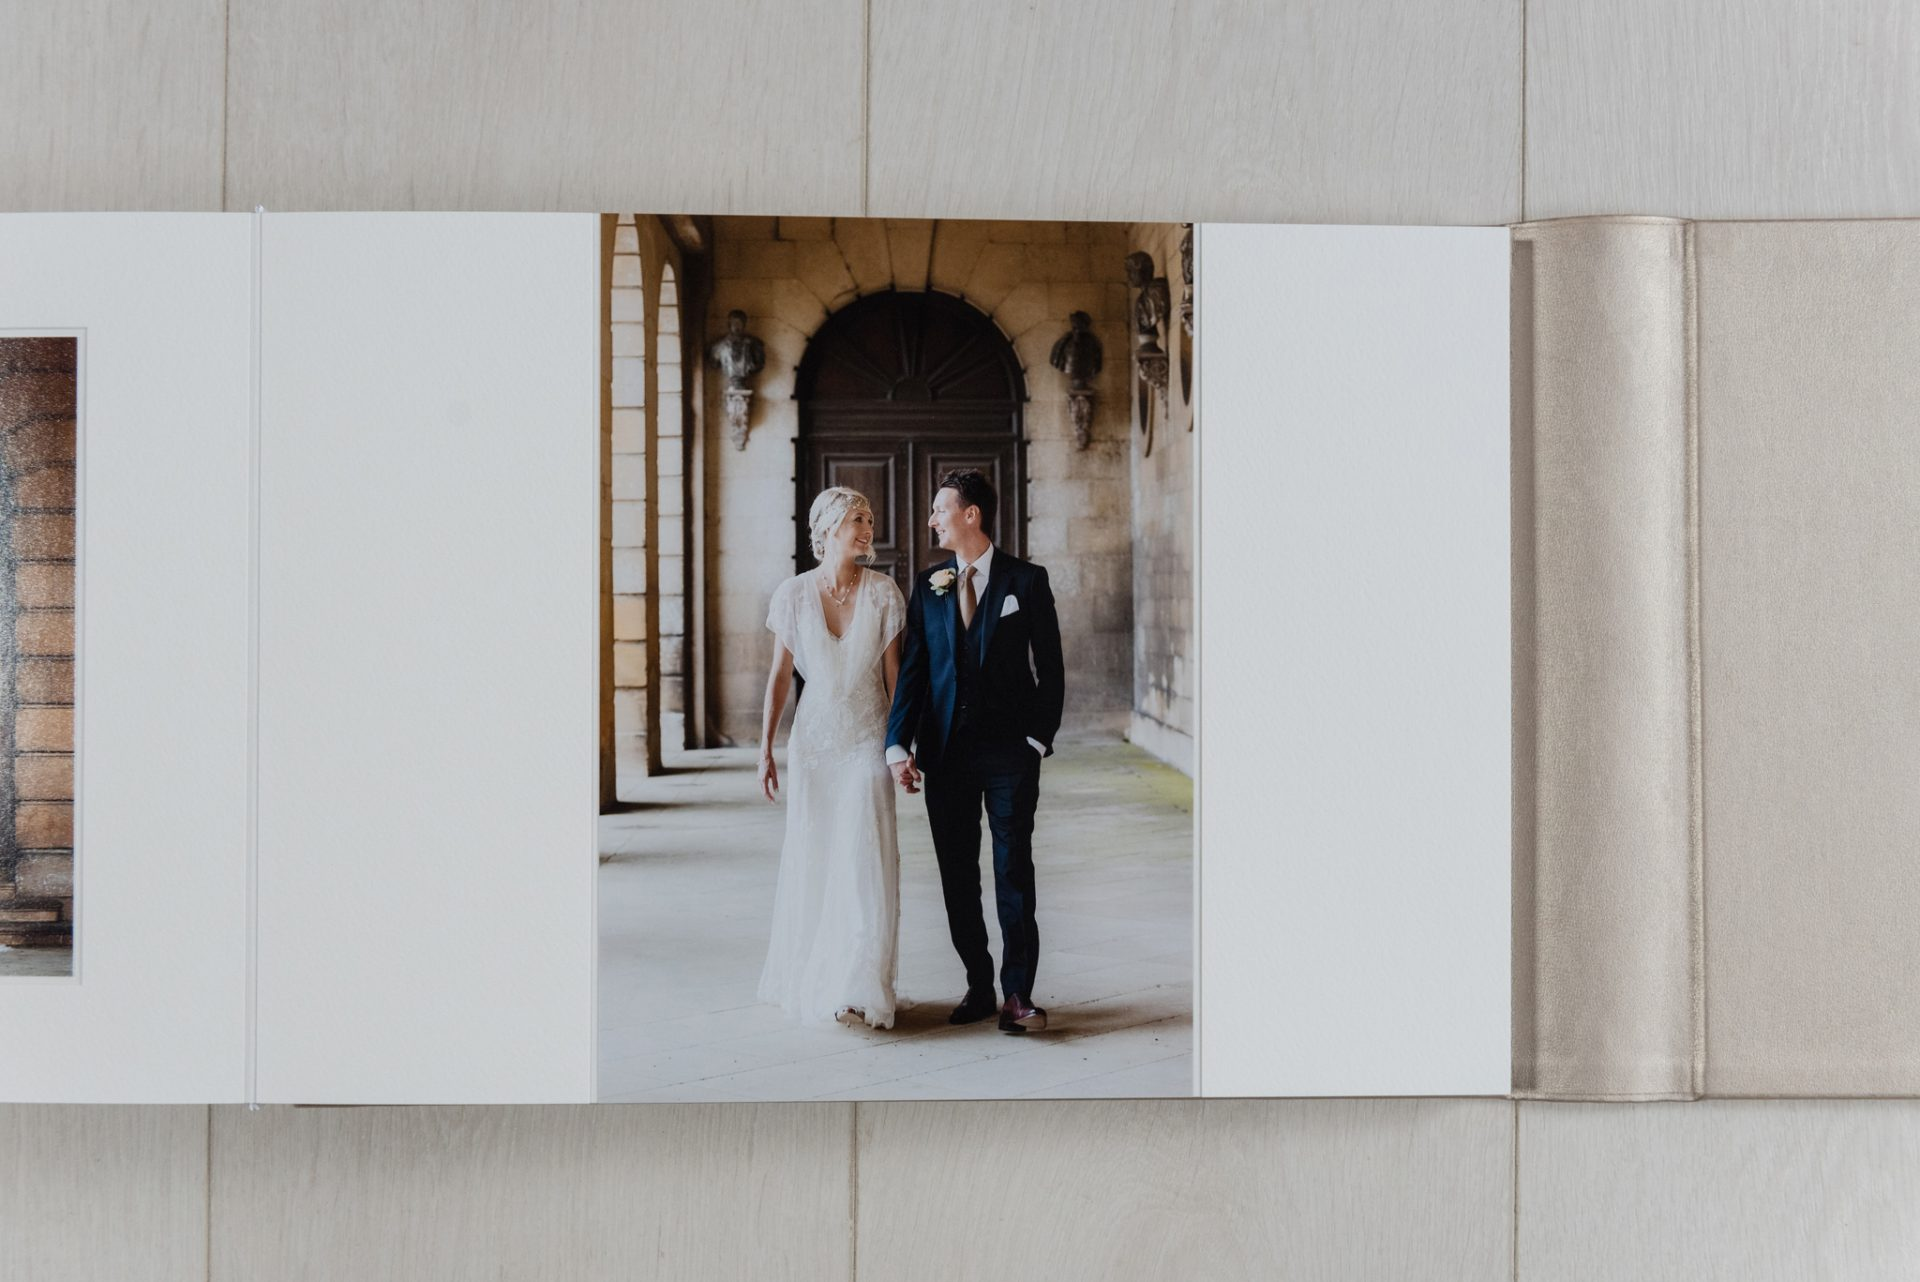 Duo page in a Queensberry matted album